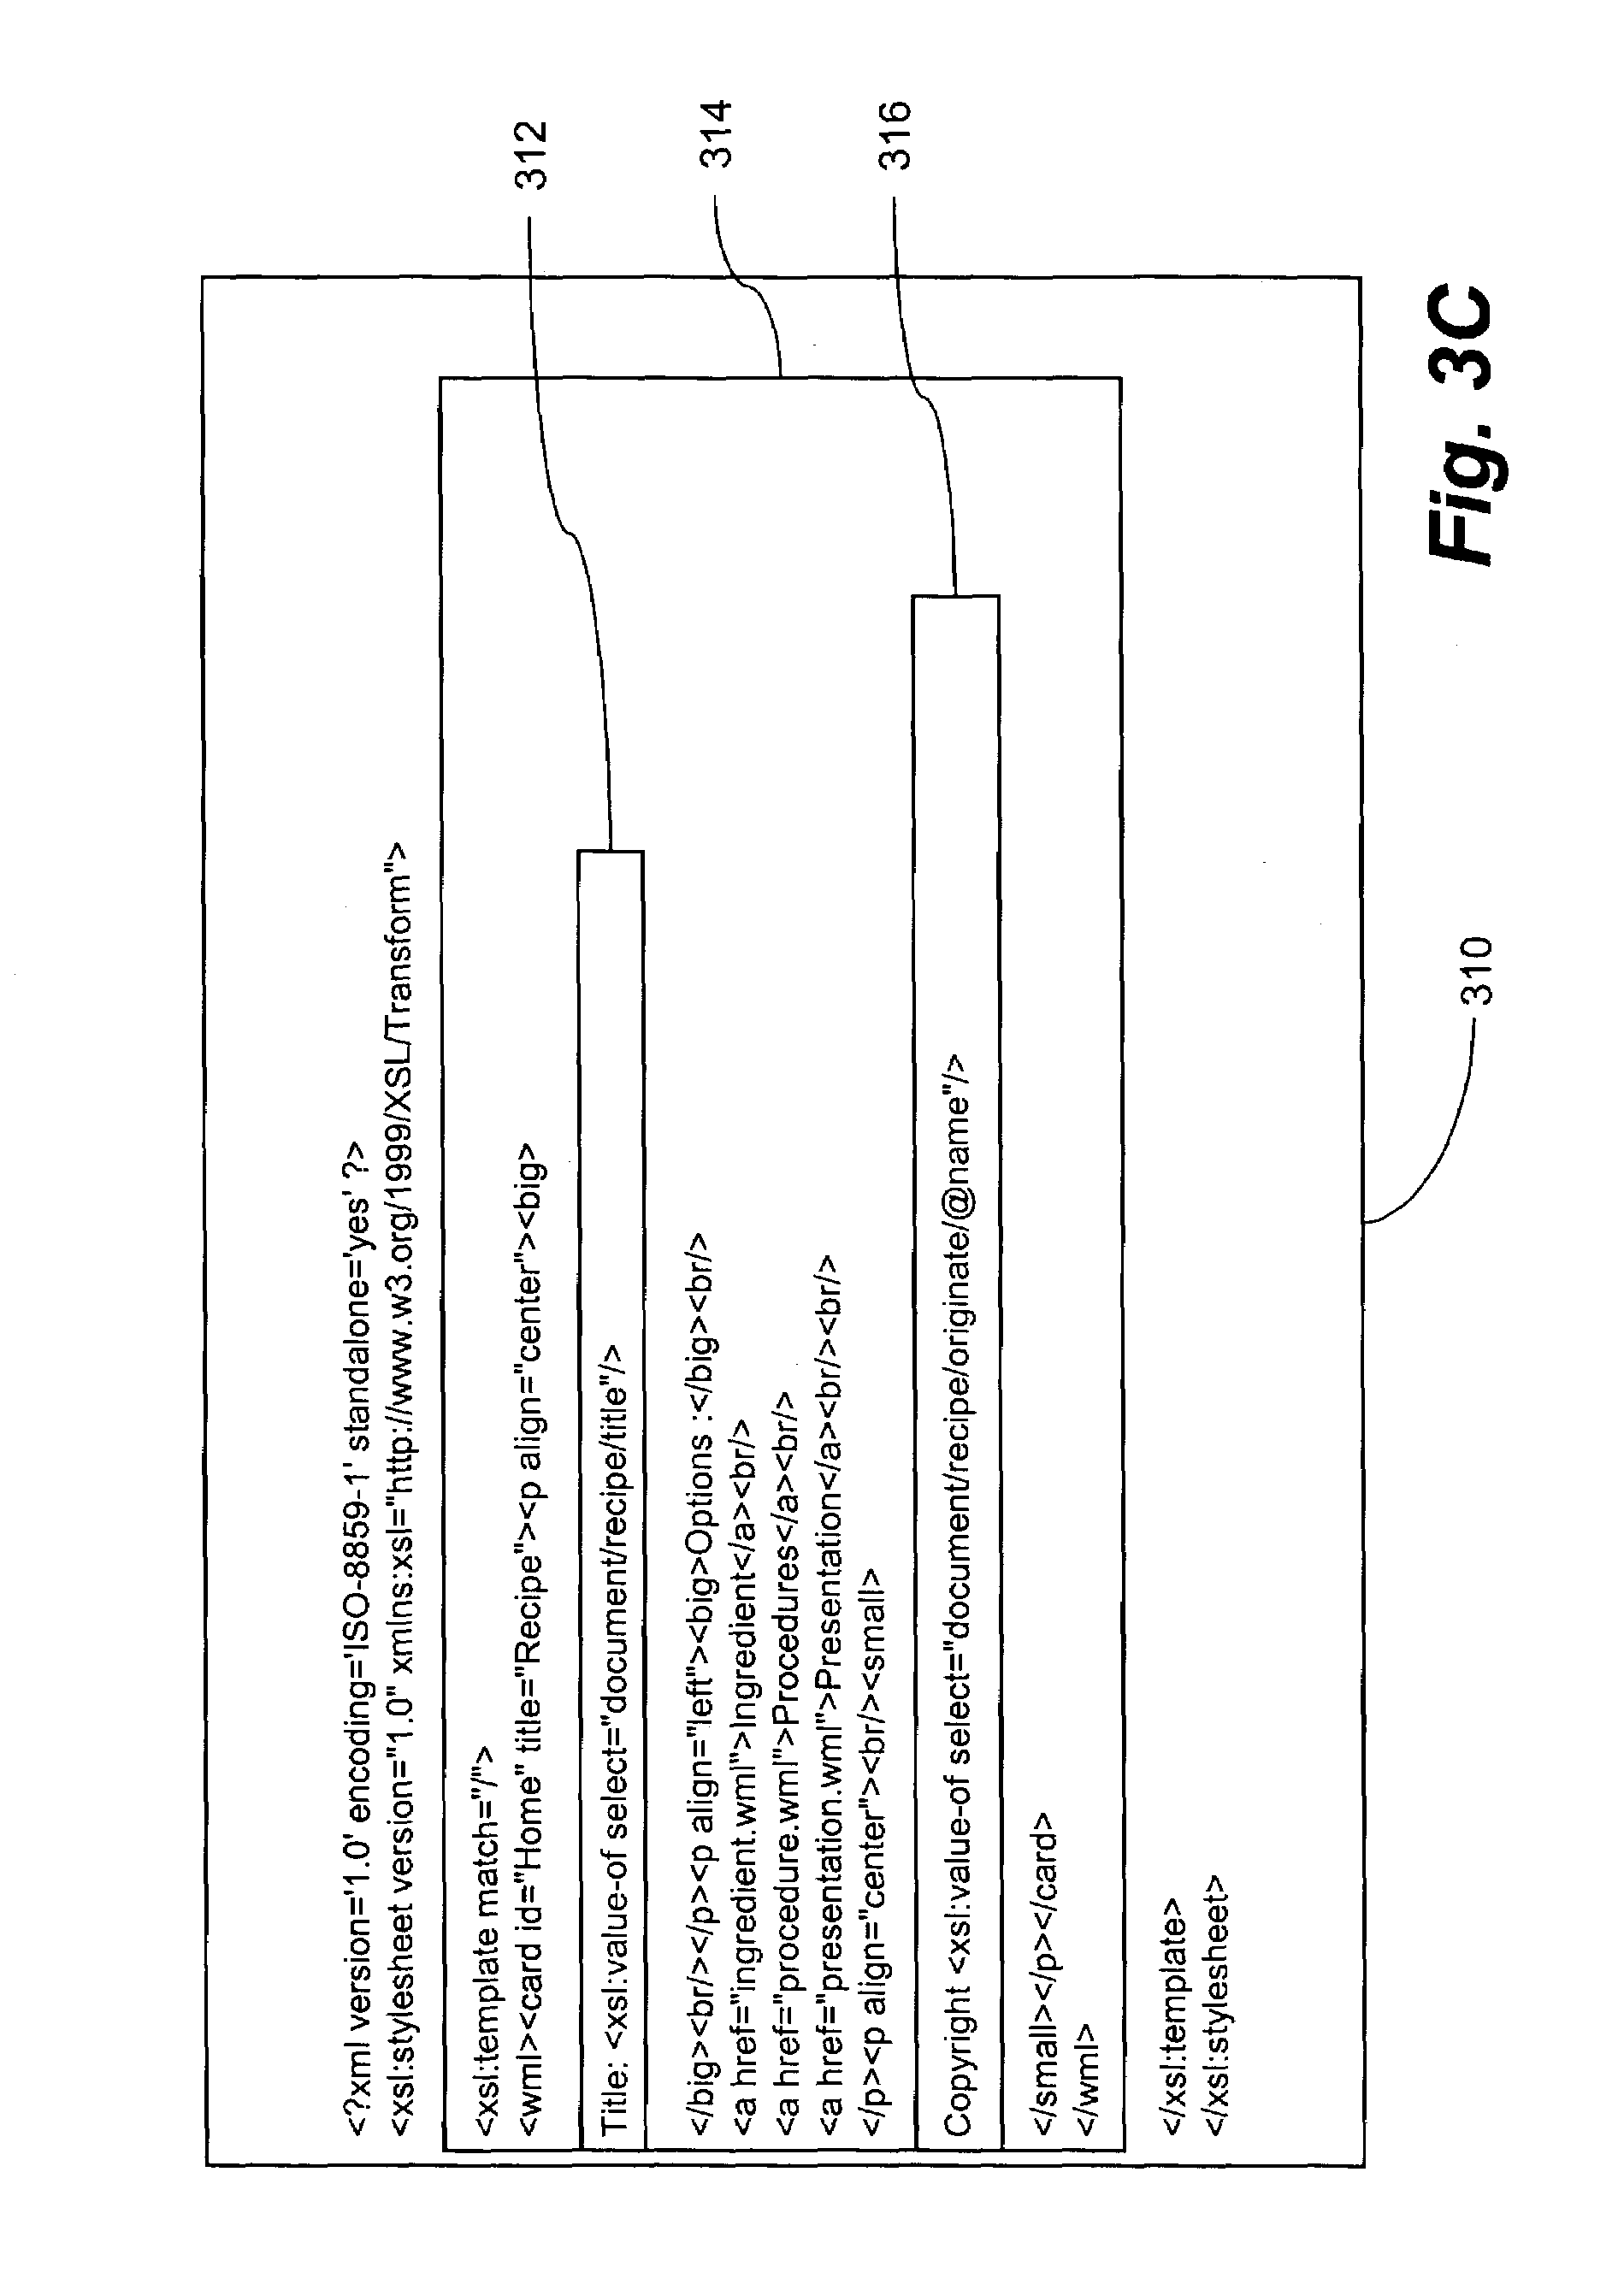 Patent US Extensible stylesheet designs in visual graphic